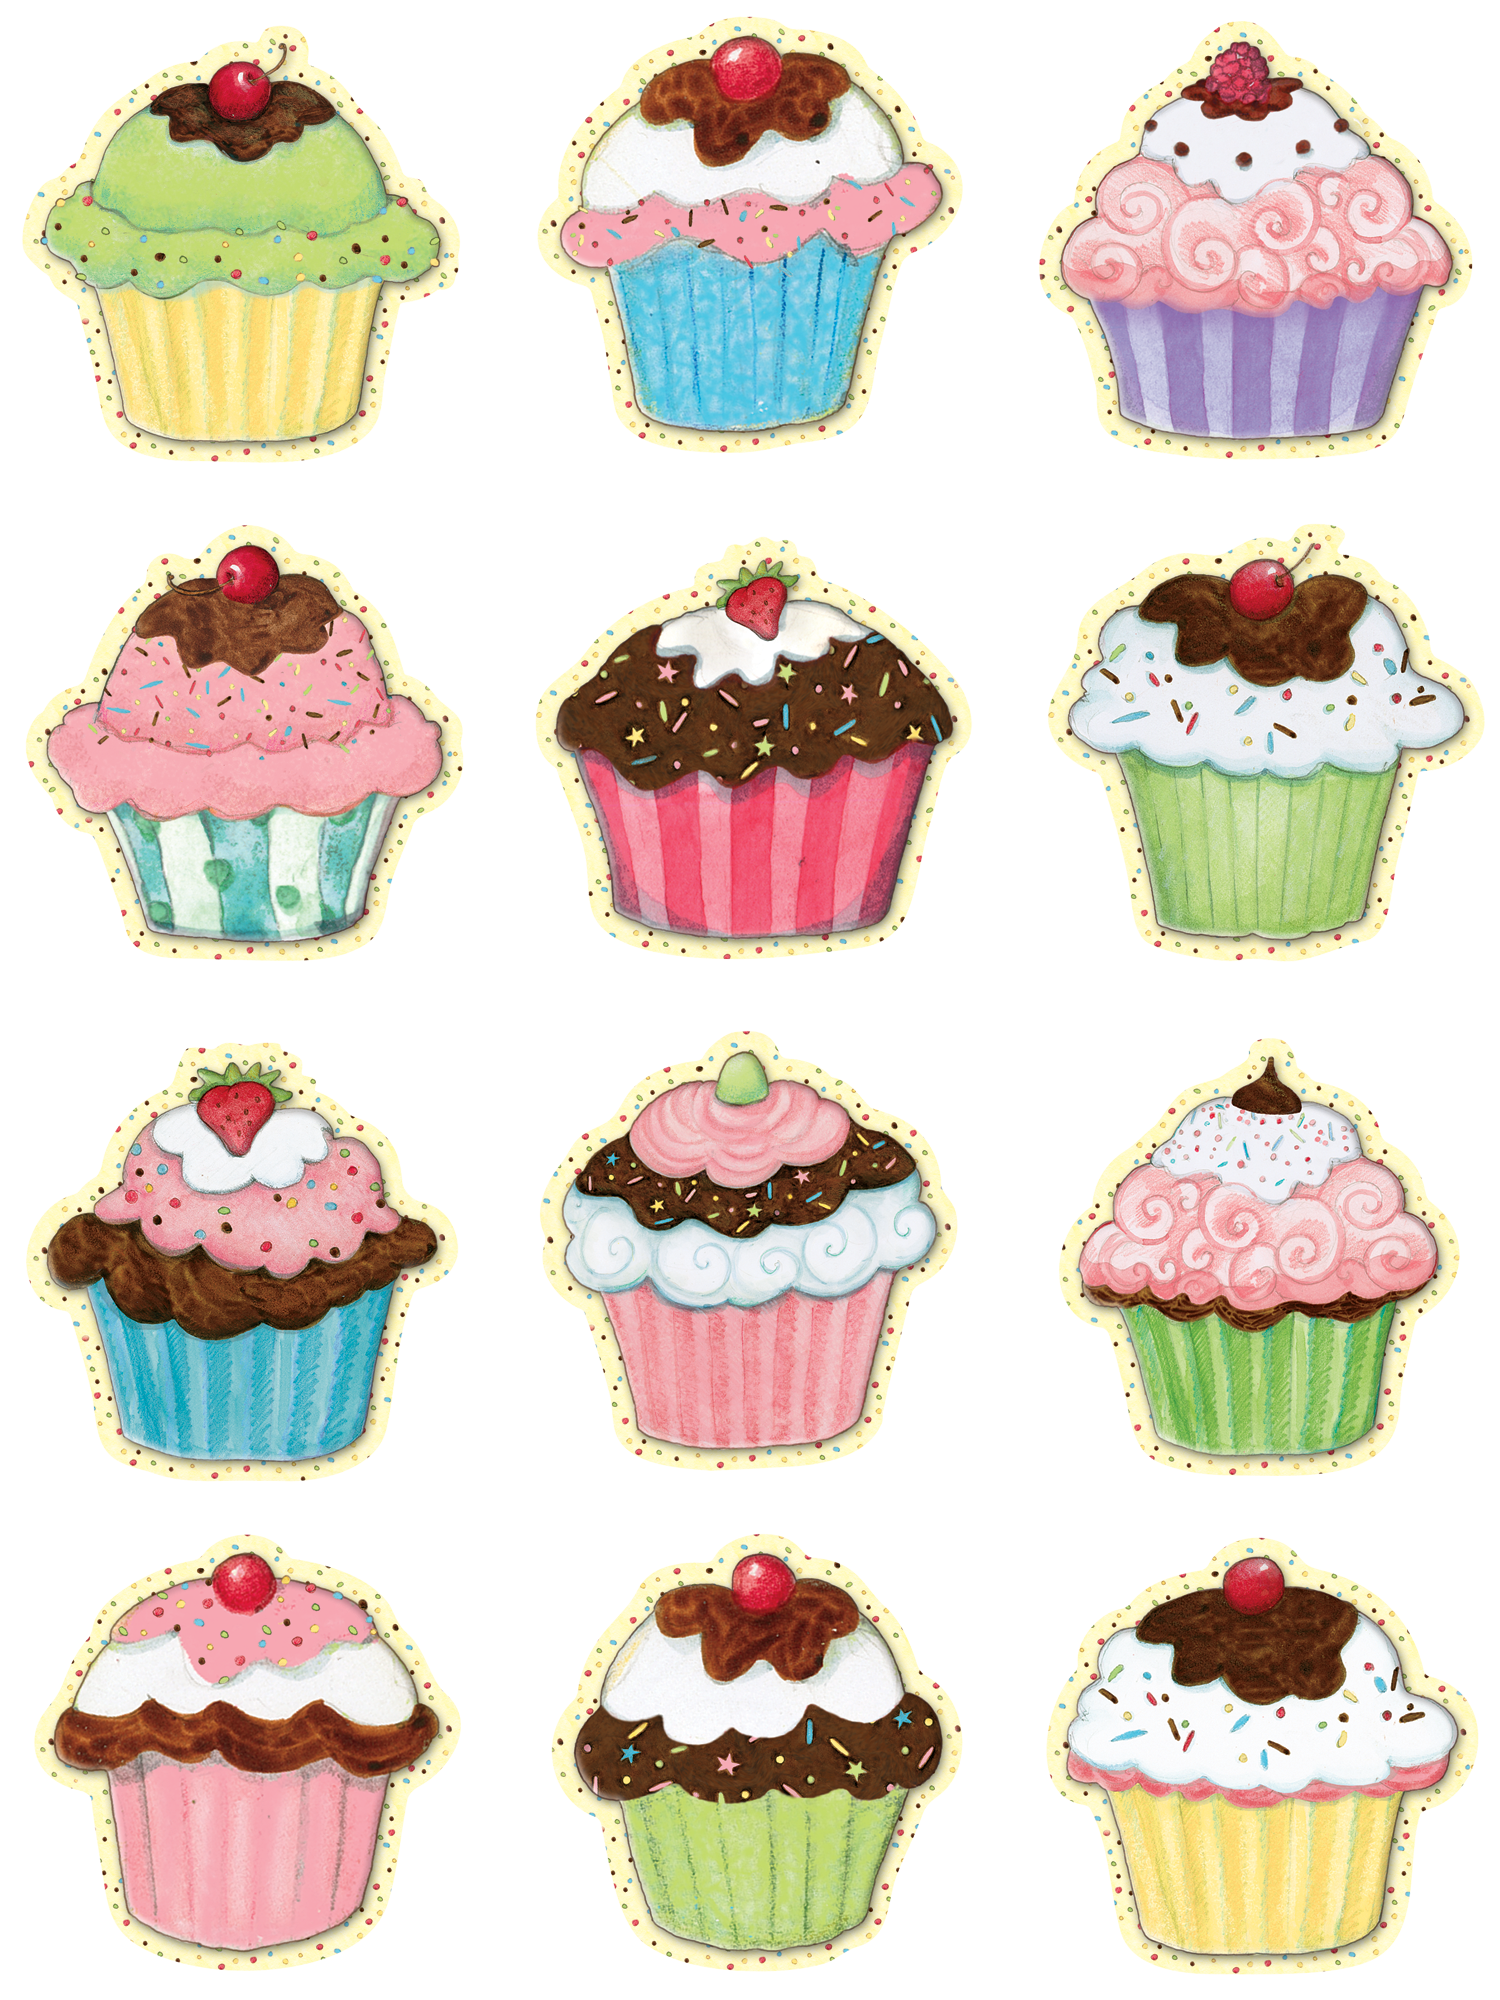 Cupcakes Mini Accents from Susan Winget Teacher created